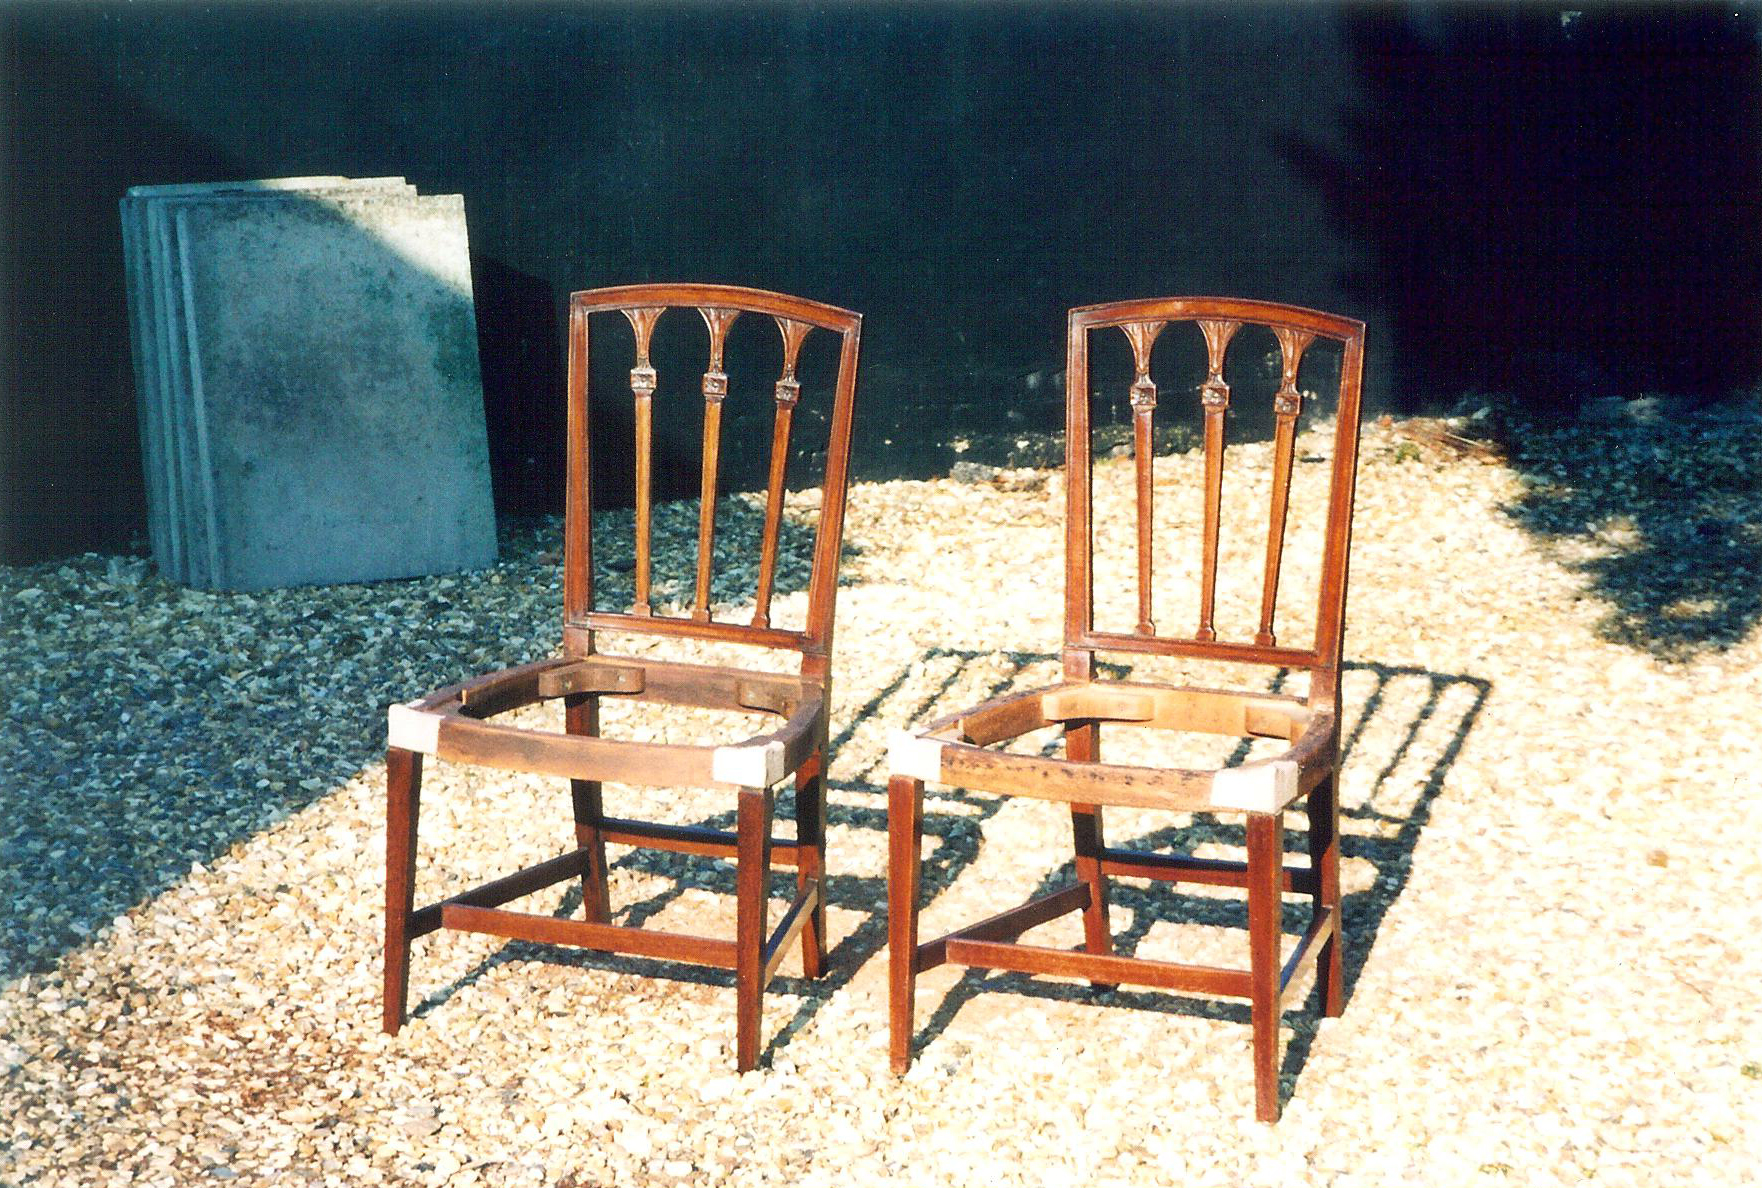 a chair Andrew made (left) to increase a set of 7 to 8.